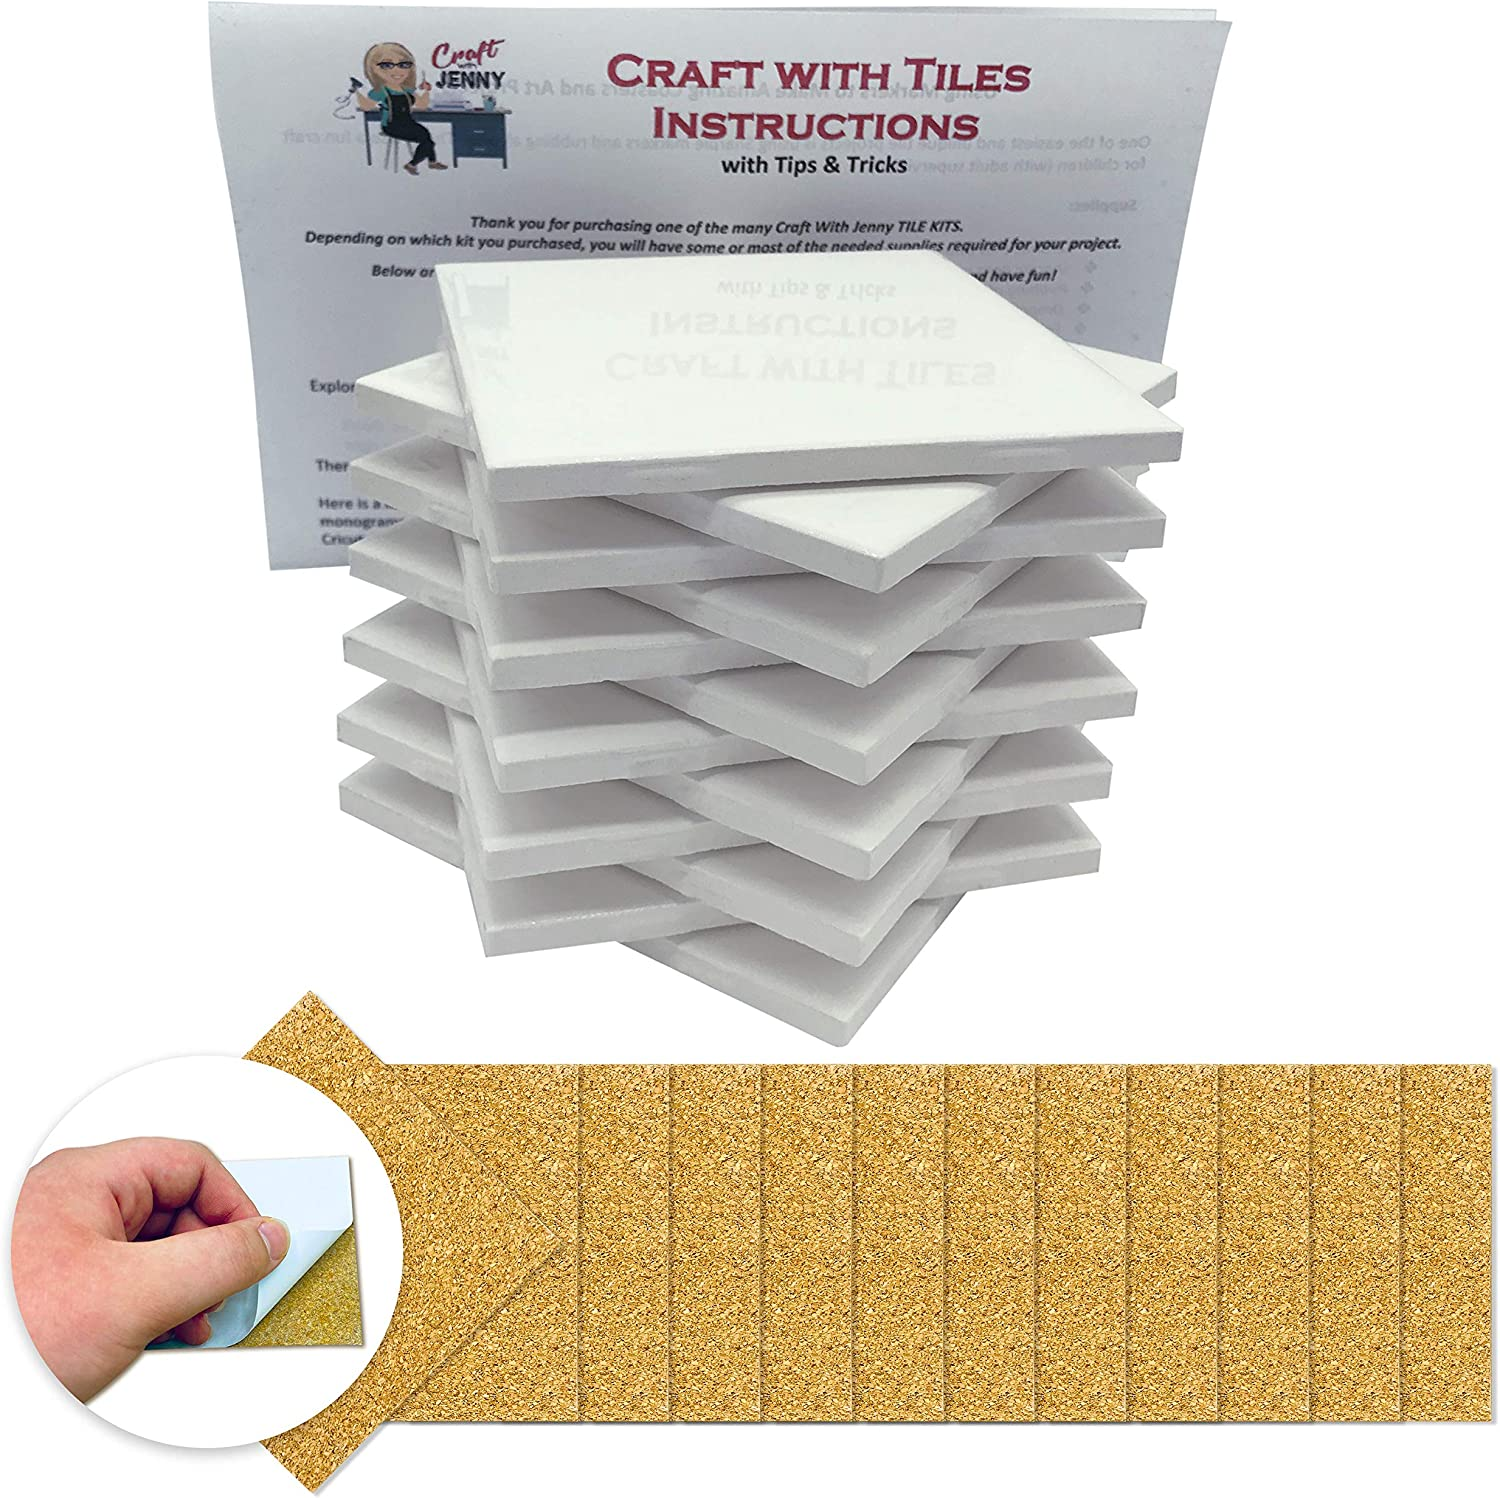 Amazon Com Coaster Tile Craft Kit Set Of 12 Ceramic White Tiles 4x4 With Detailed Instructions Plus Tips And Tricks Diy Make Your Own Coasters Mosaics Painting Projects Decoupage Arts Crafts Sewing